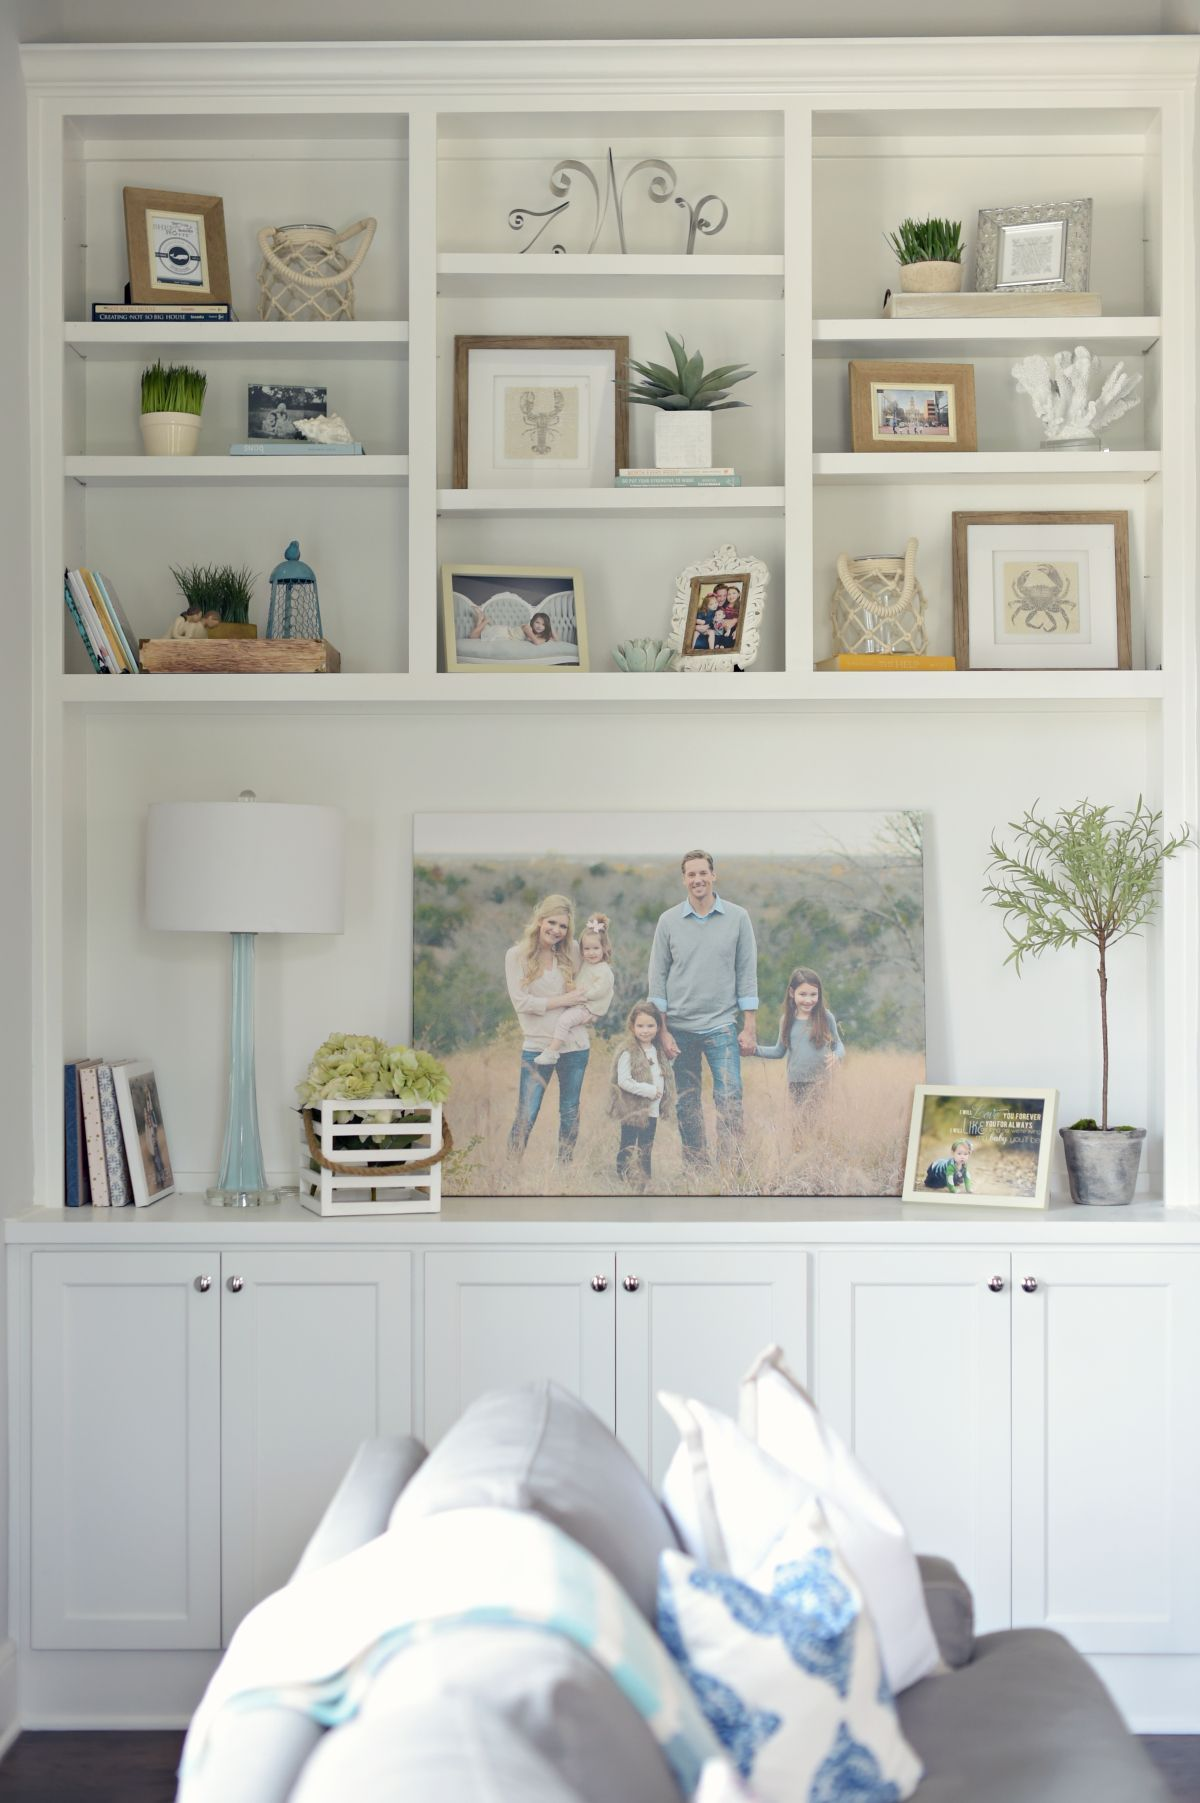 Pin By Kirsten Rappa On Living Room In 2020 With Images Family